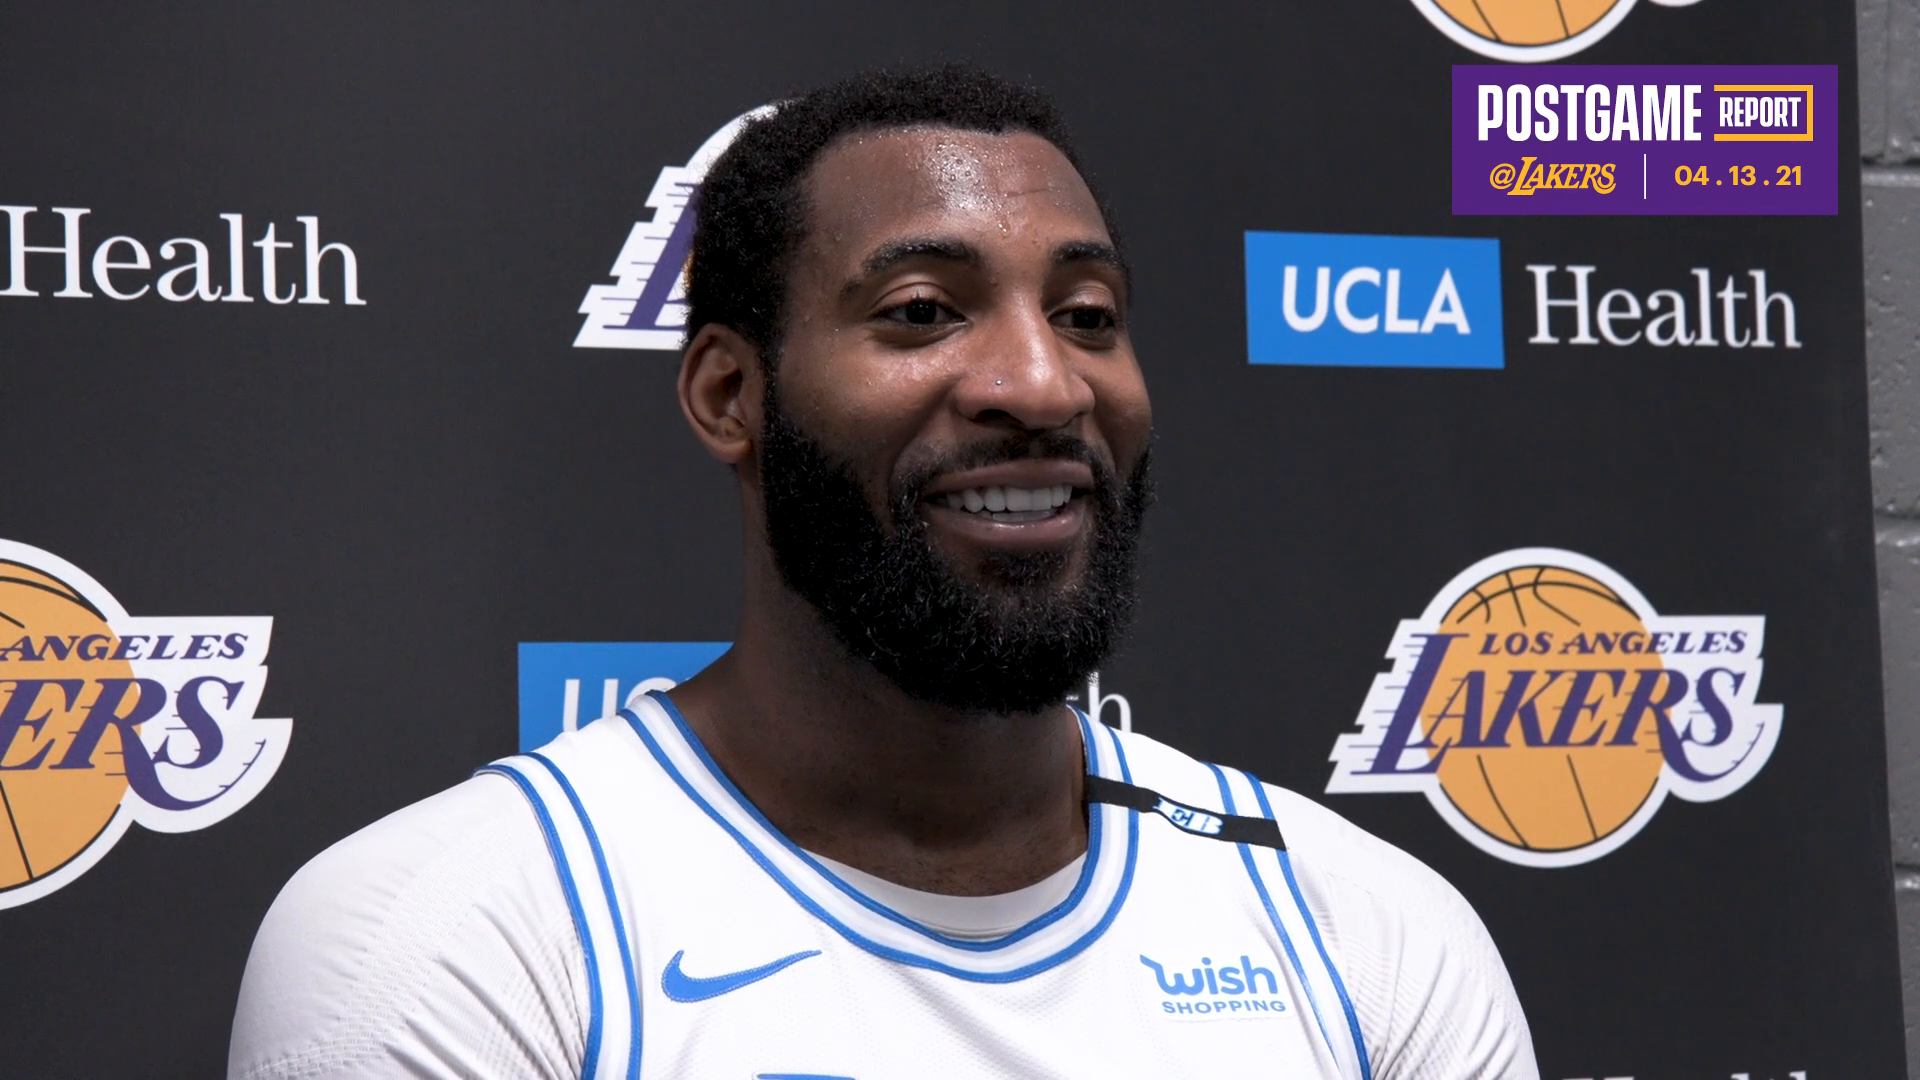 Lakers Postgame: Andre Drummond (4/13/21)